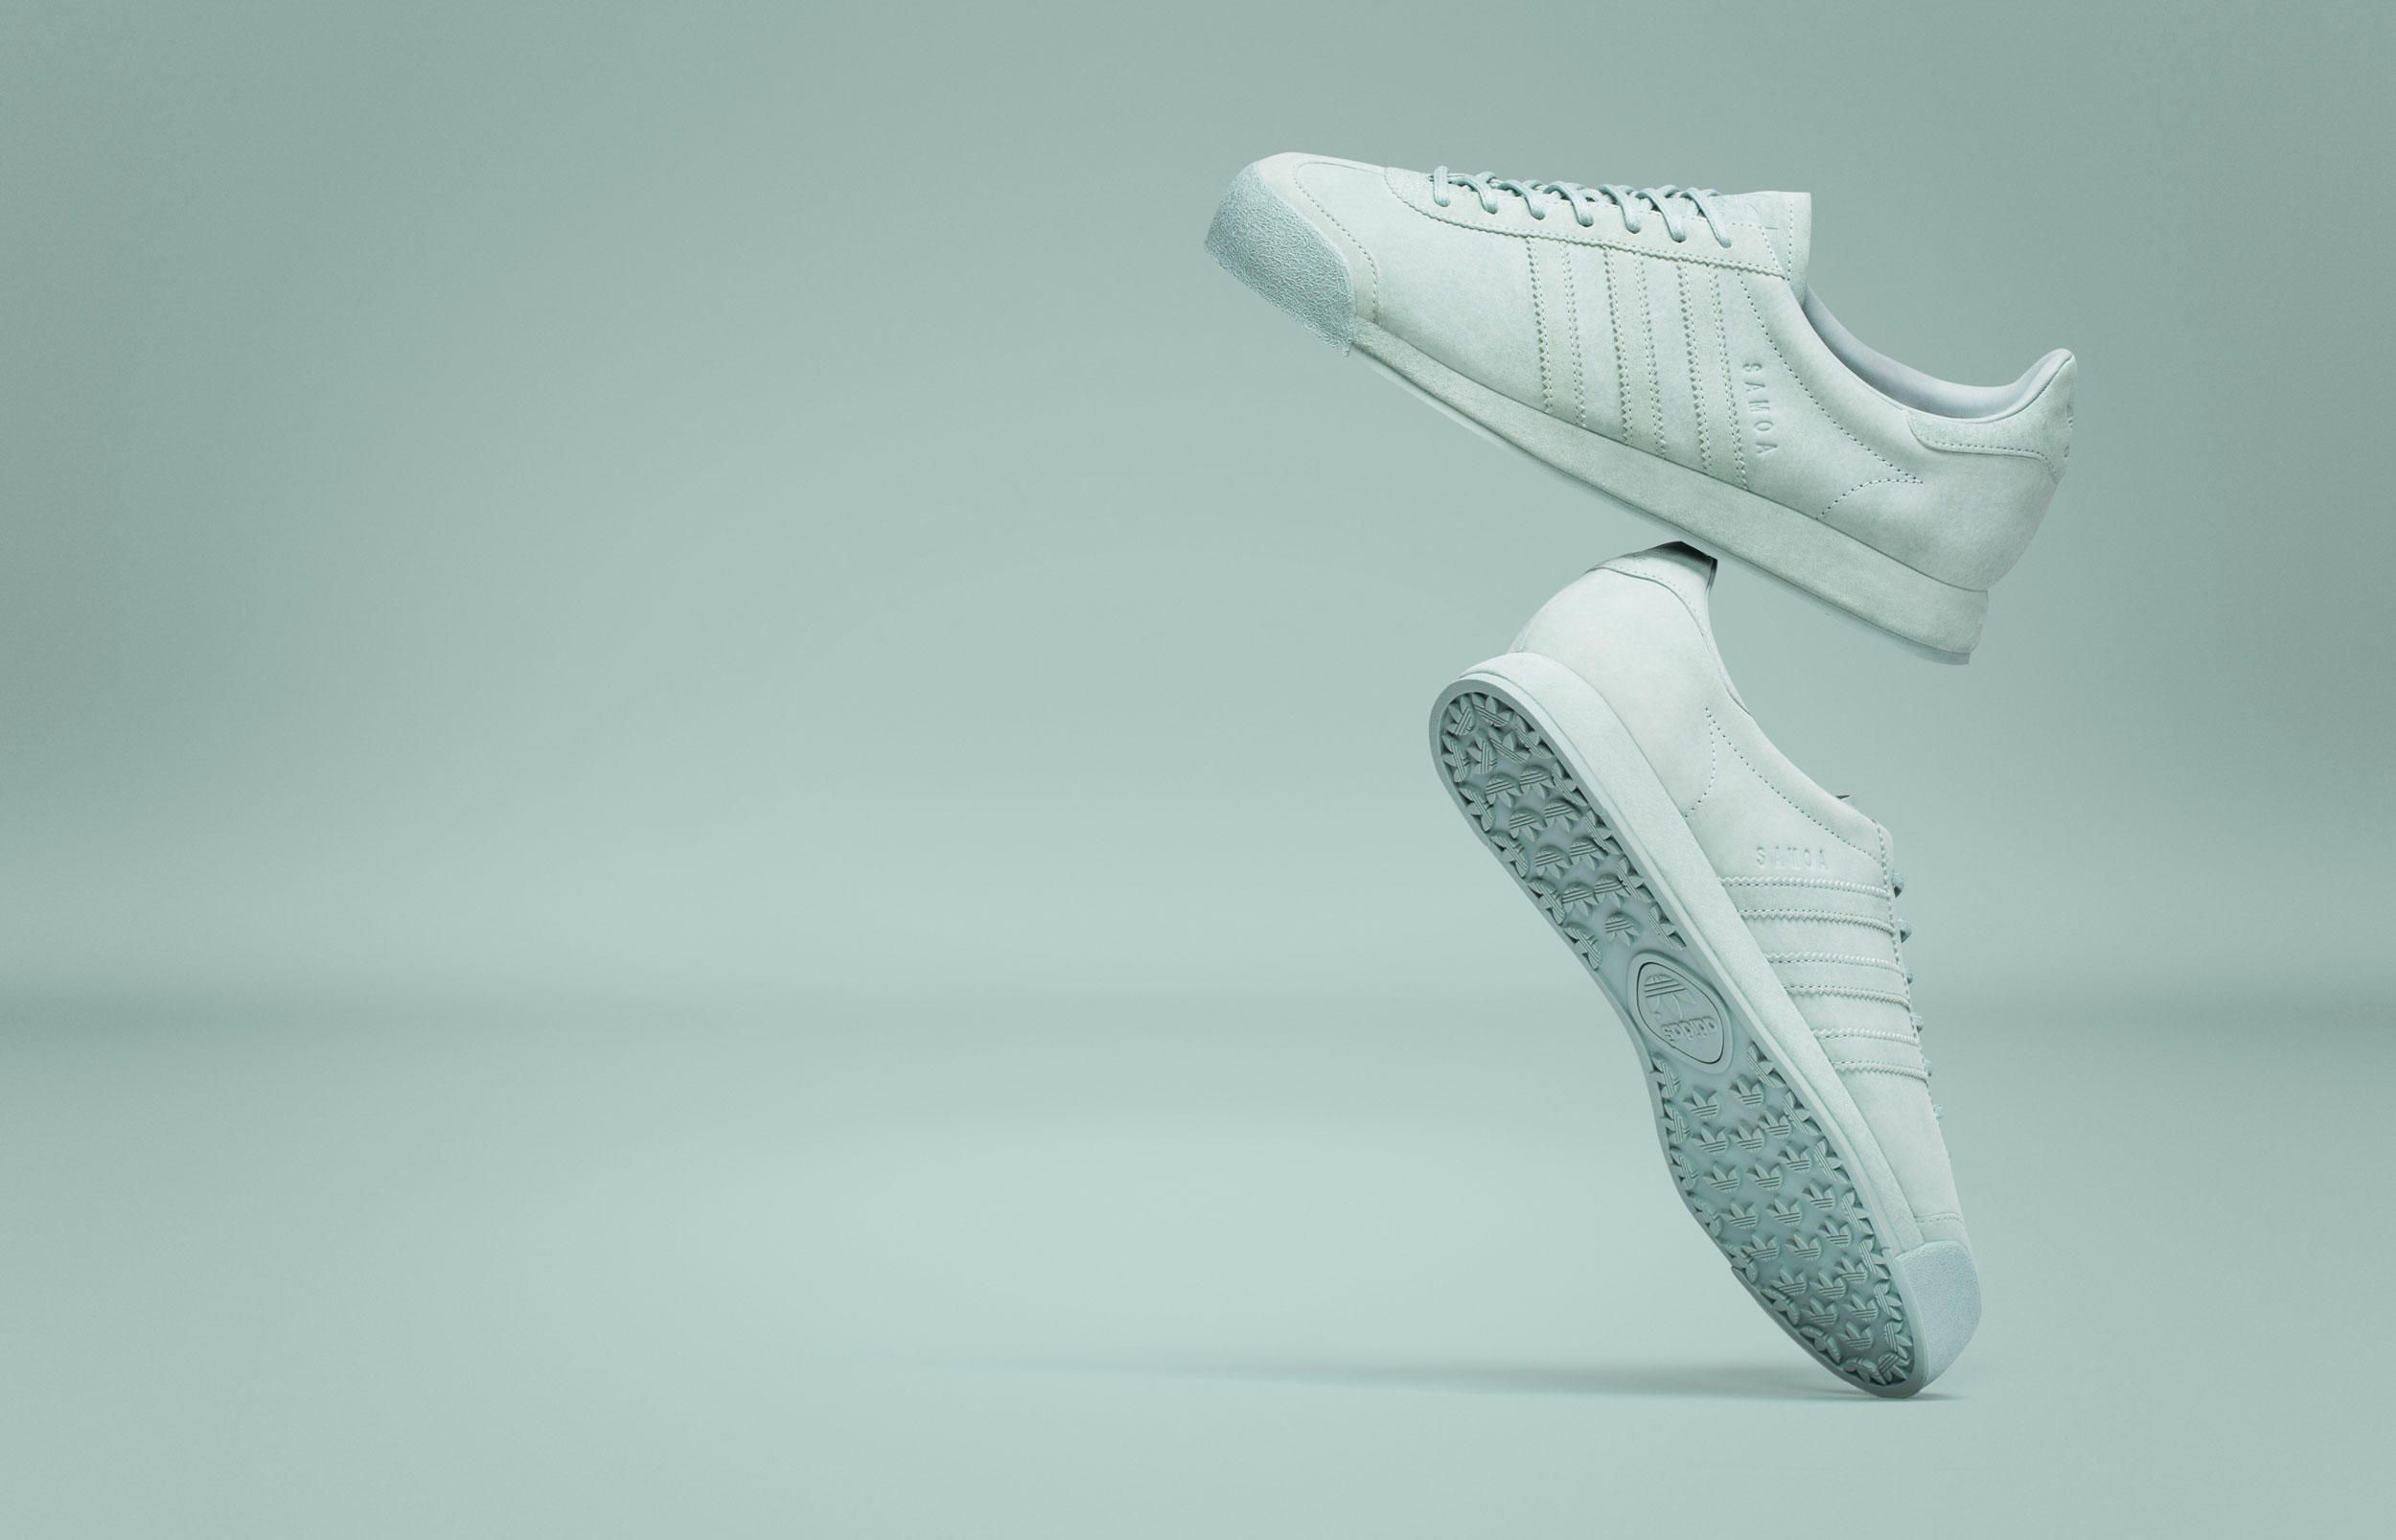 8ba030f607884 adidas Originals Elevates the Samoa With Two New Luxe Colorways - Freshness  Mag